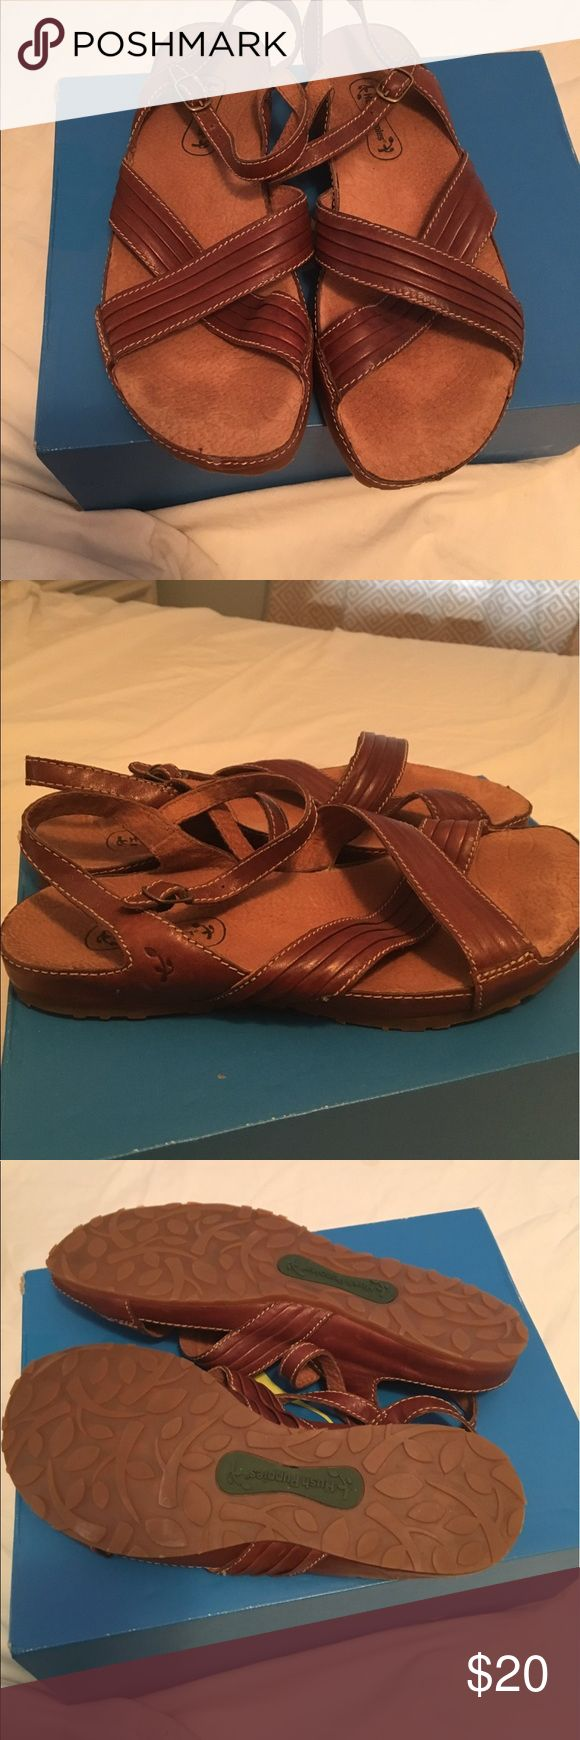 Brown hurache style sandals (Hush Puppy) Brown leather straps, Hushpuppy brand, worn maybe 3x, slight wear in bedding (see pic). Super comfortable, worn during last month of pregnancy. Hush Puppies Shoes Sandals